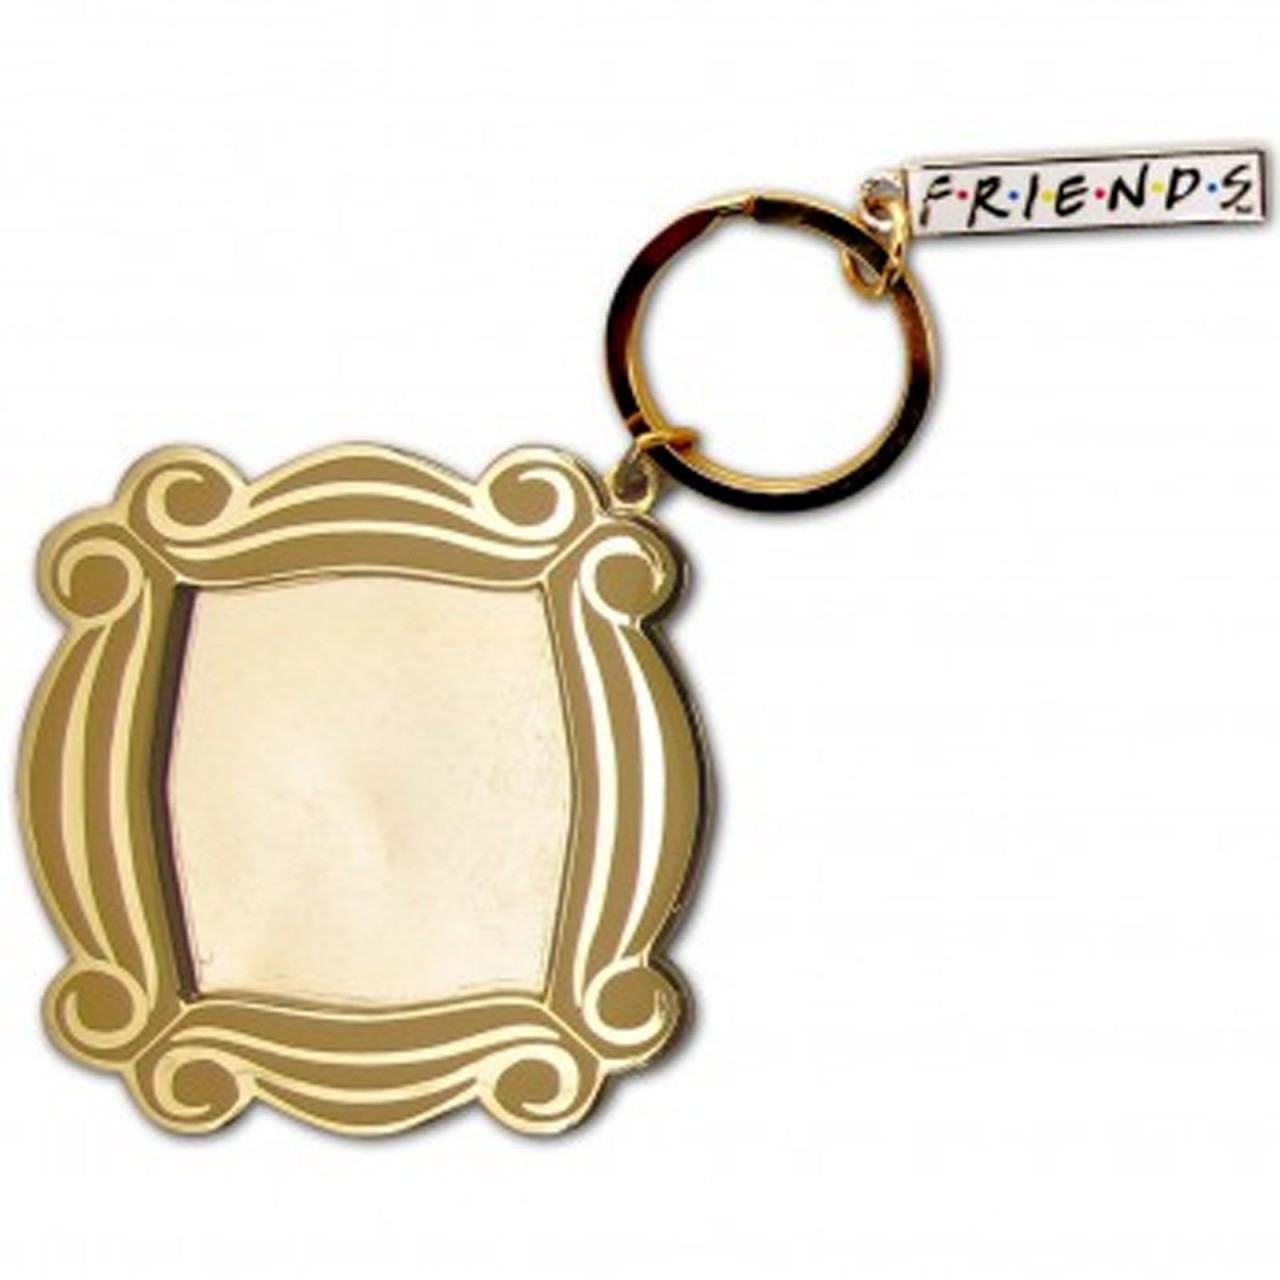 Friends Frame Keychain, Must Have Item, Very Detailed - Reel Art